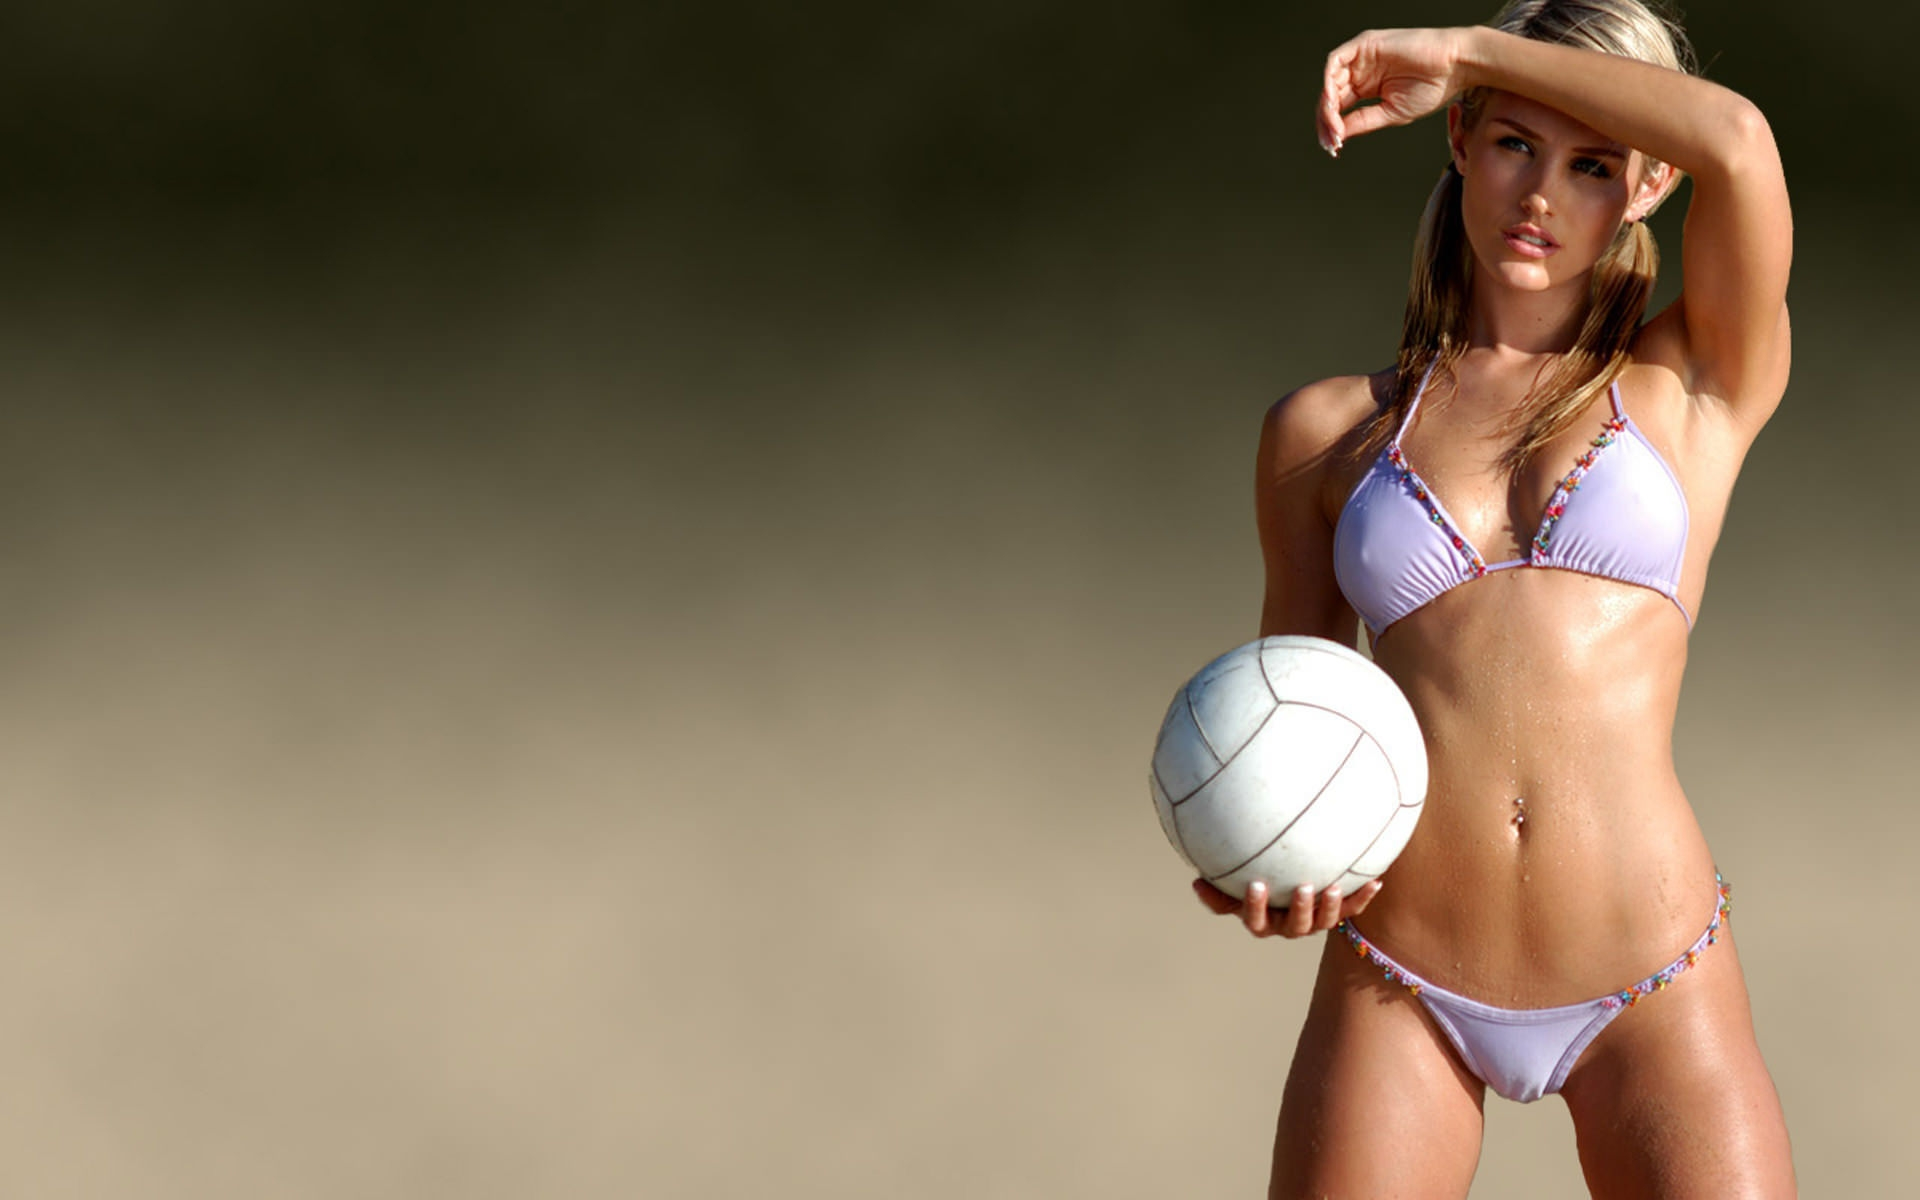 Sexy Sport Brunette Woman For Android